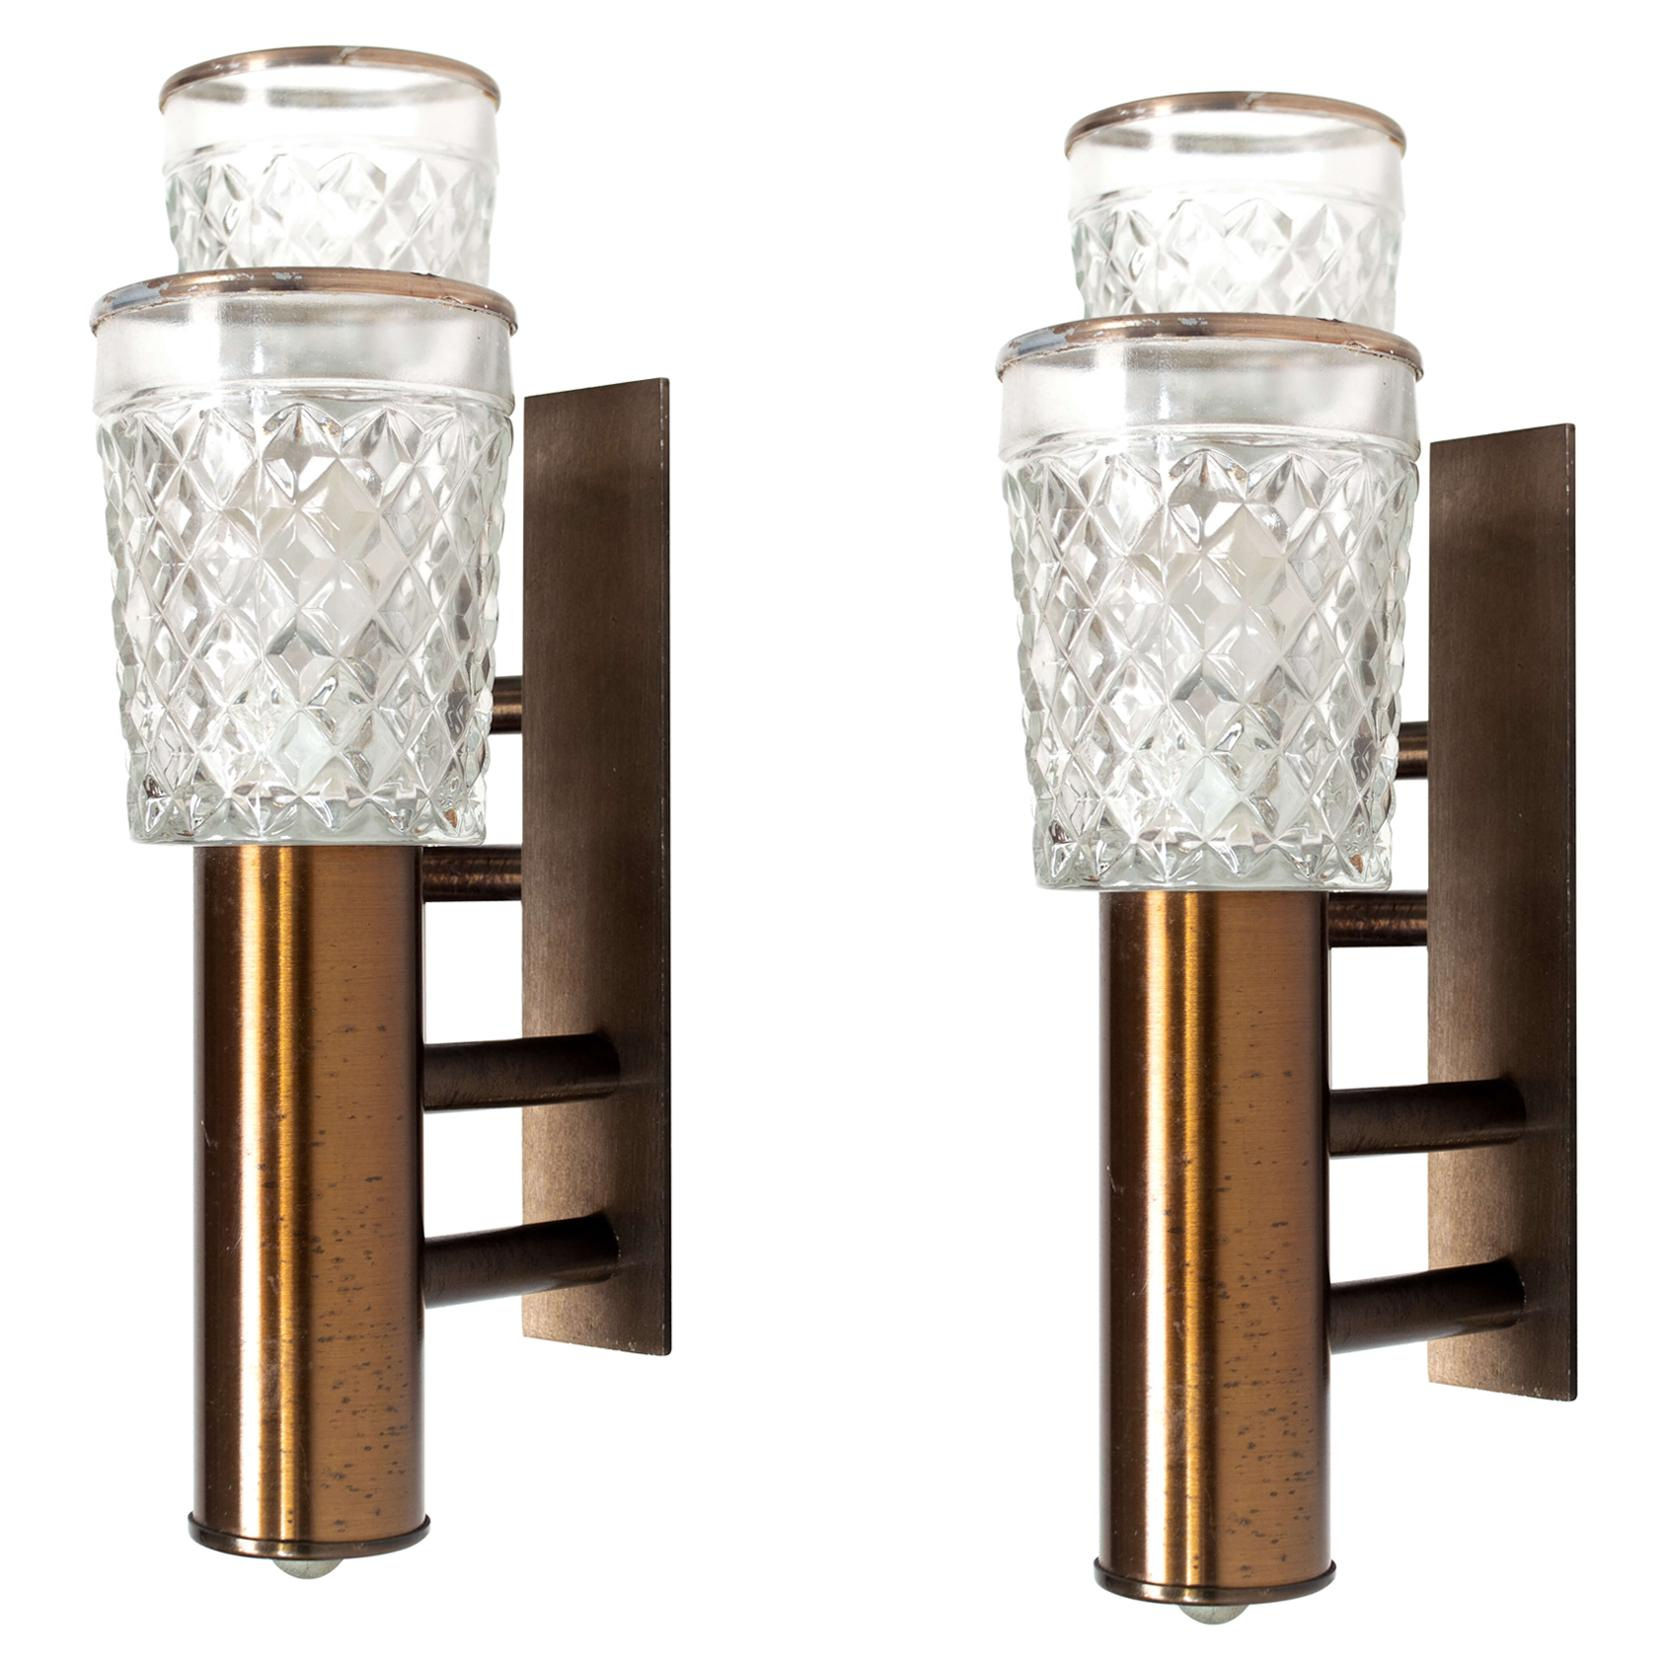 Set of Two Stilux Wall Appliques in Glass and Metal from Italy, 1960s